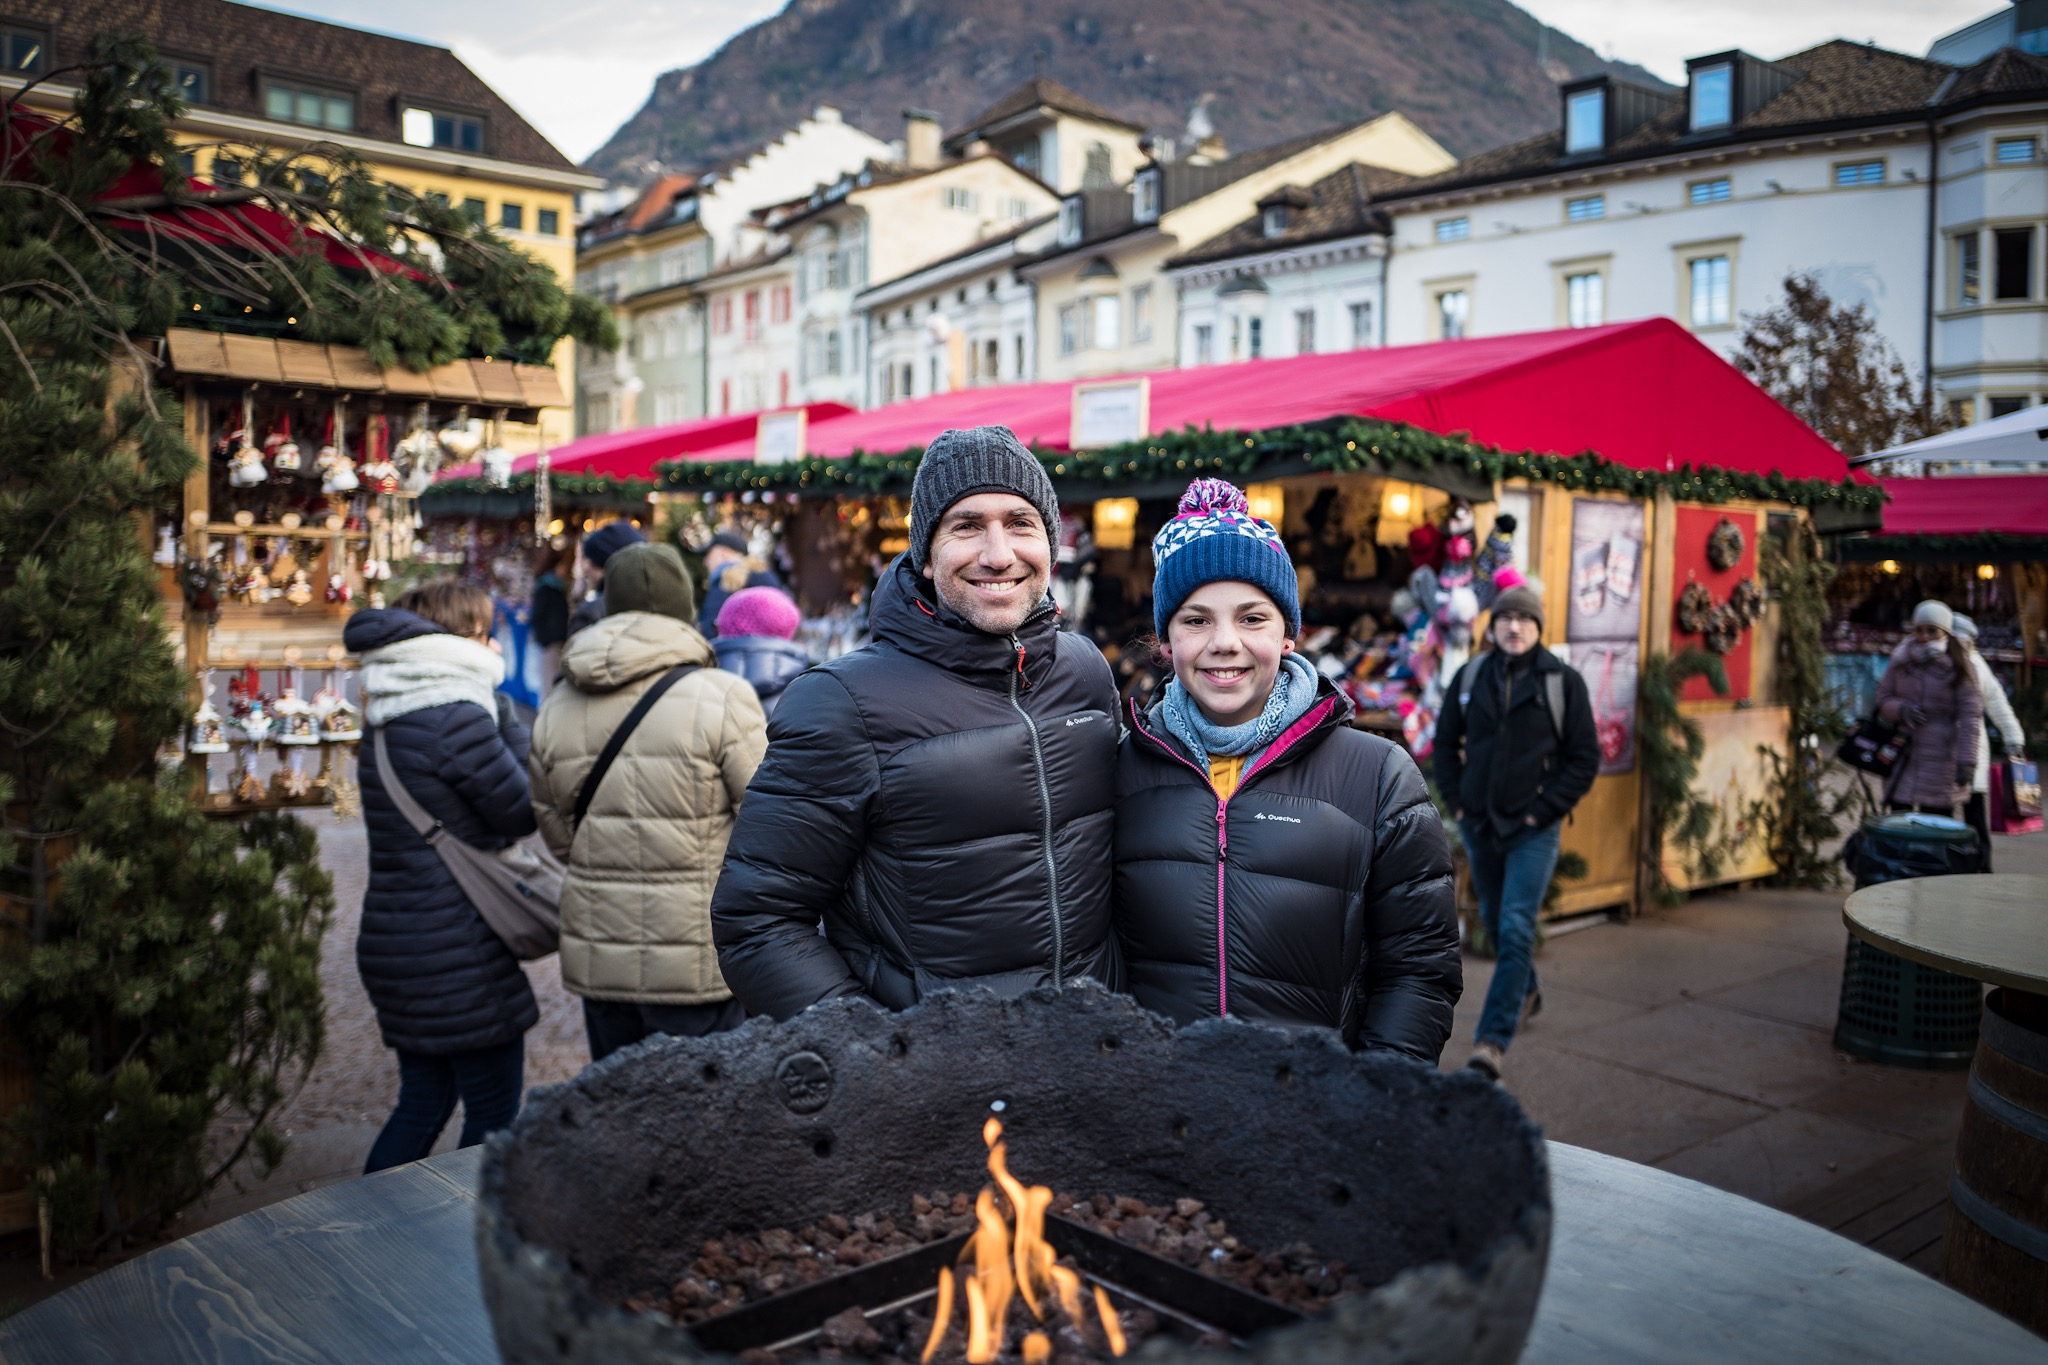 Hanging by the fire at the Xmas markets drinking warm drinks in the very cold streets of Bolzano